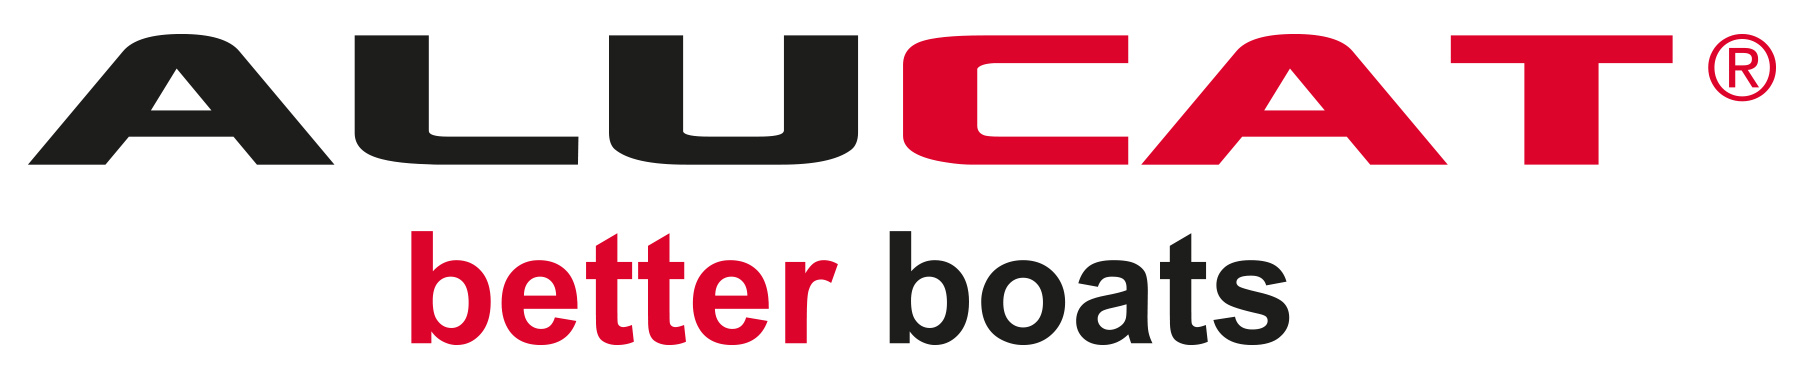 Alucat better boats